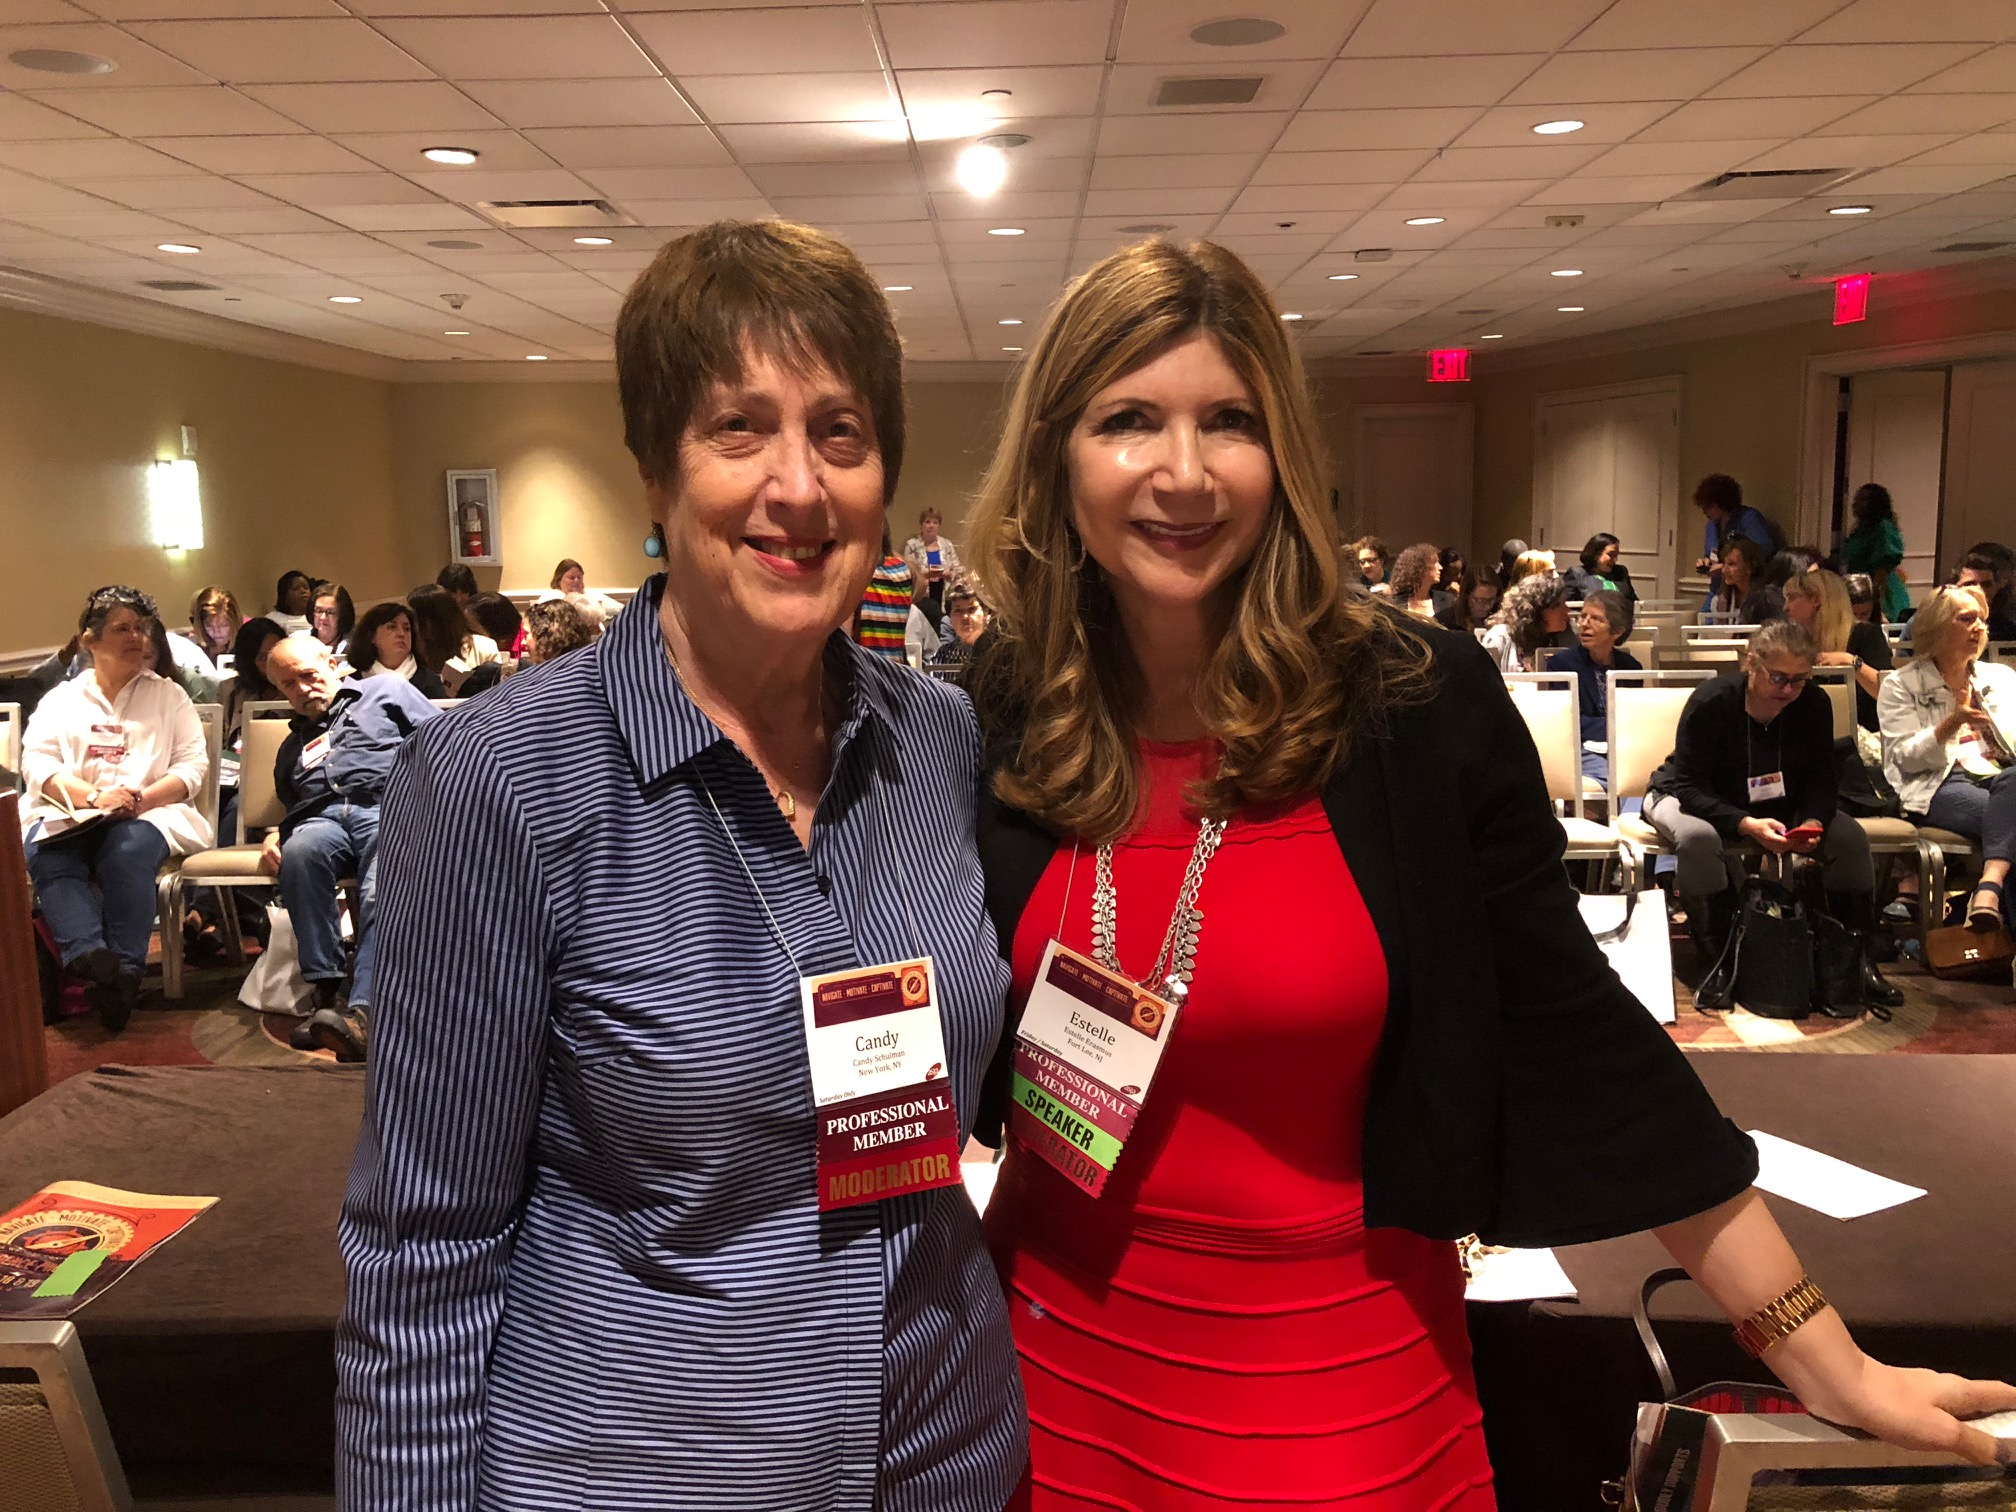 Me and Candy speaking at ASJA